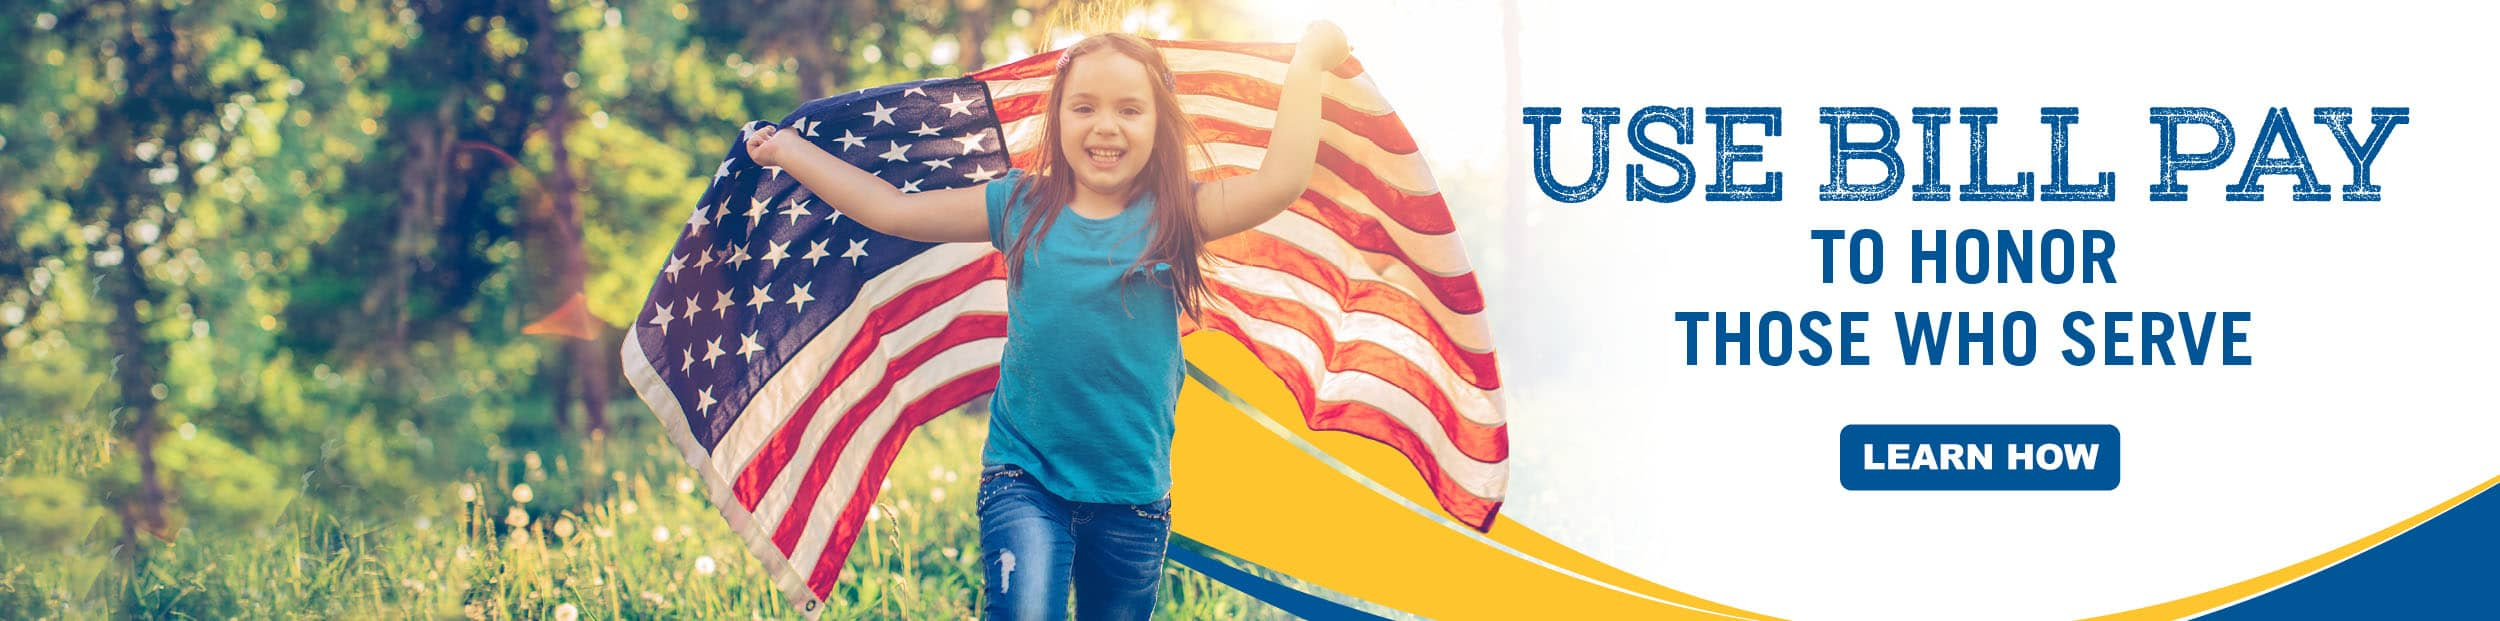 Little girl with brown hair running outside with the American flag.